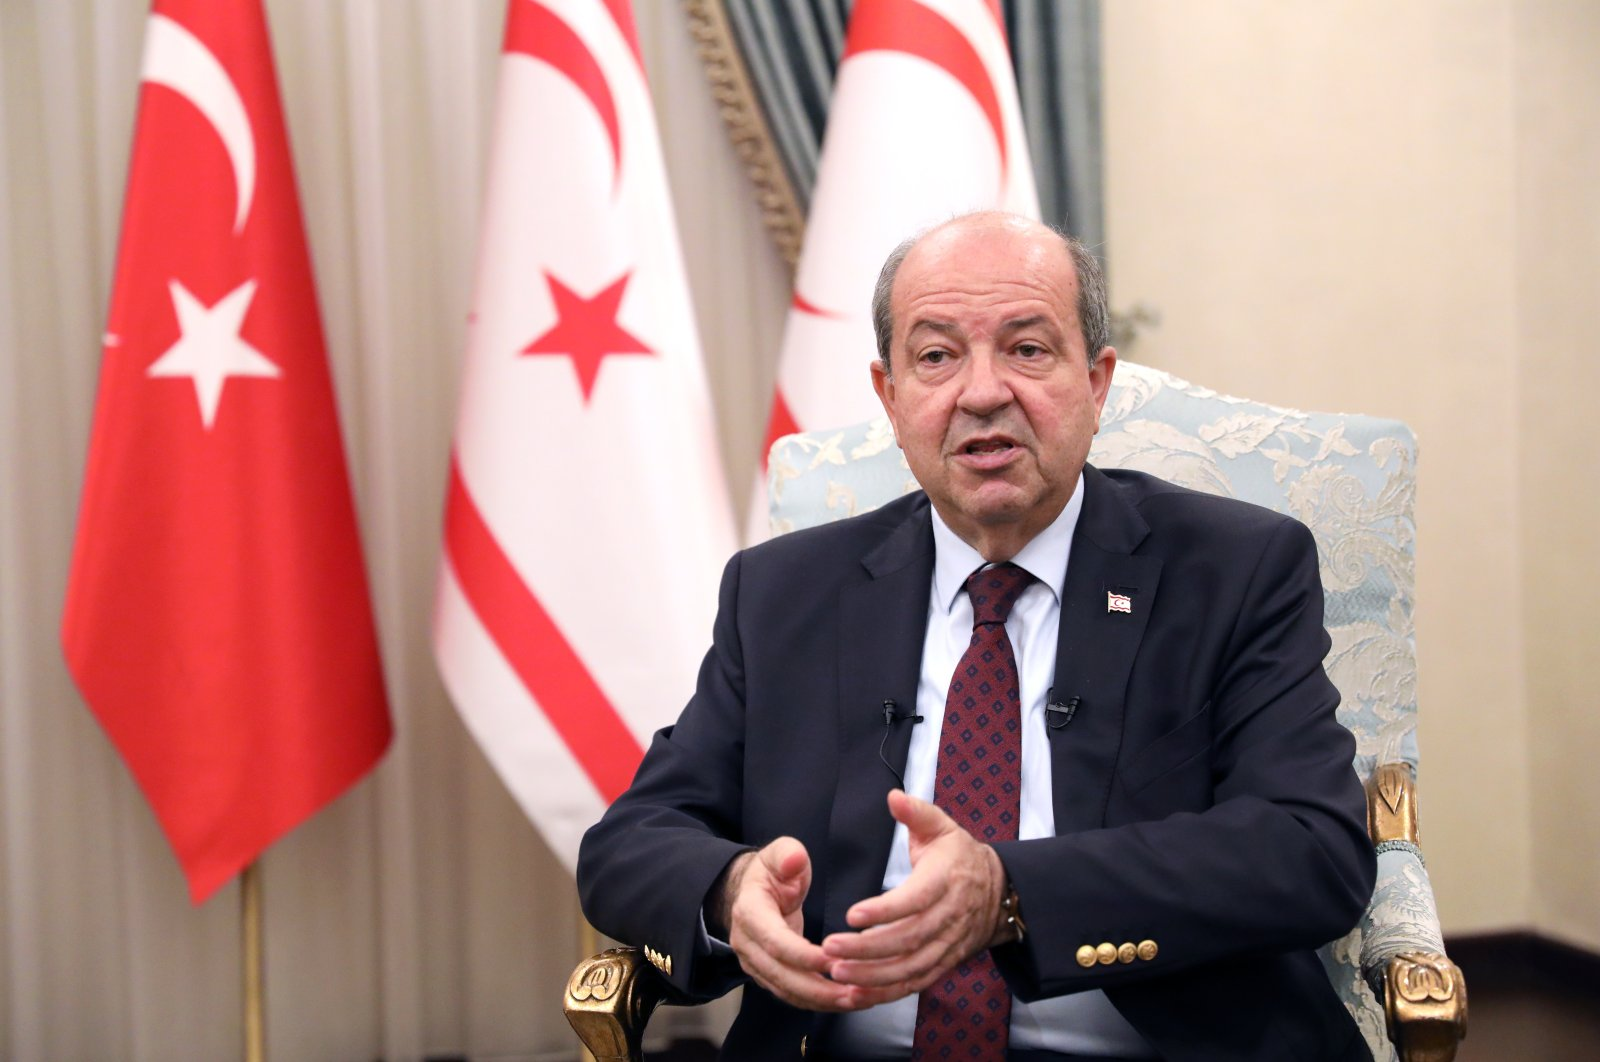 Turkish Cypriot President Tatar gives an interview to Anadolu Agency at the Presidency in Nicosia, Turkish Republic of Northern Cyprus, Oct. 25, 2020 (AA Photo)